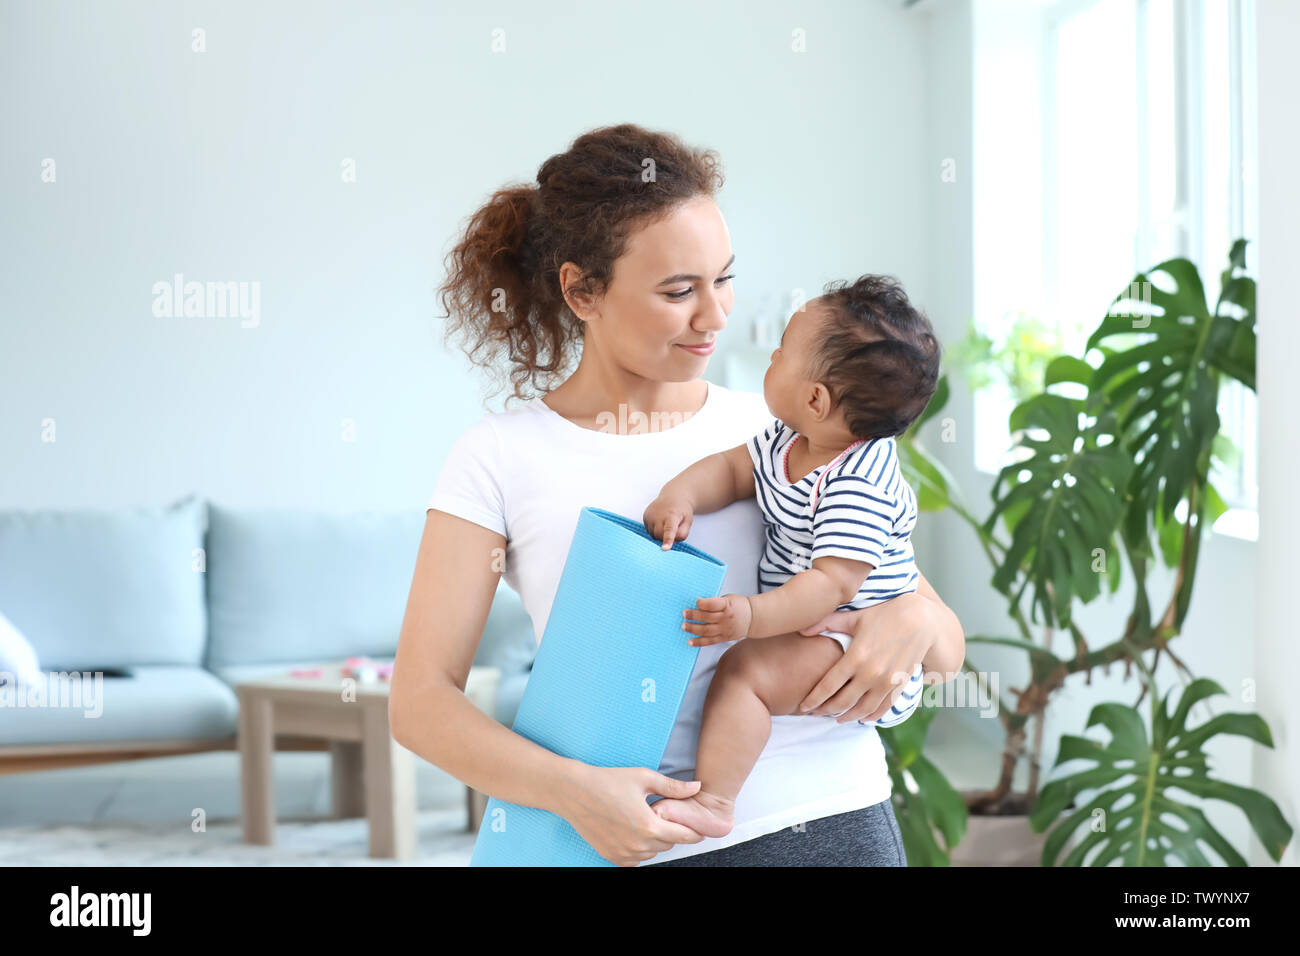 Sporty African-American woman with cute little baby at home - Stock Image